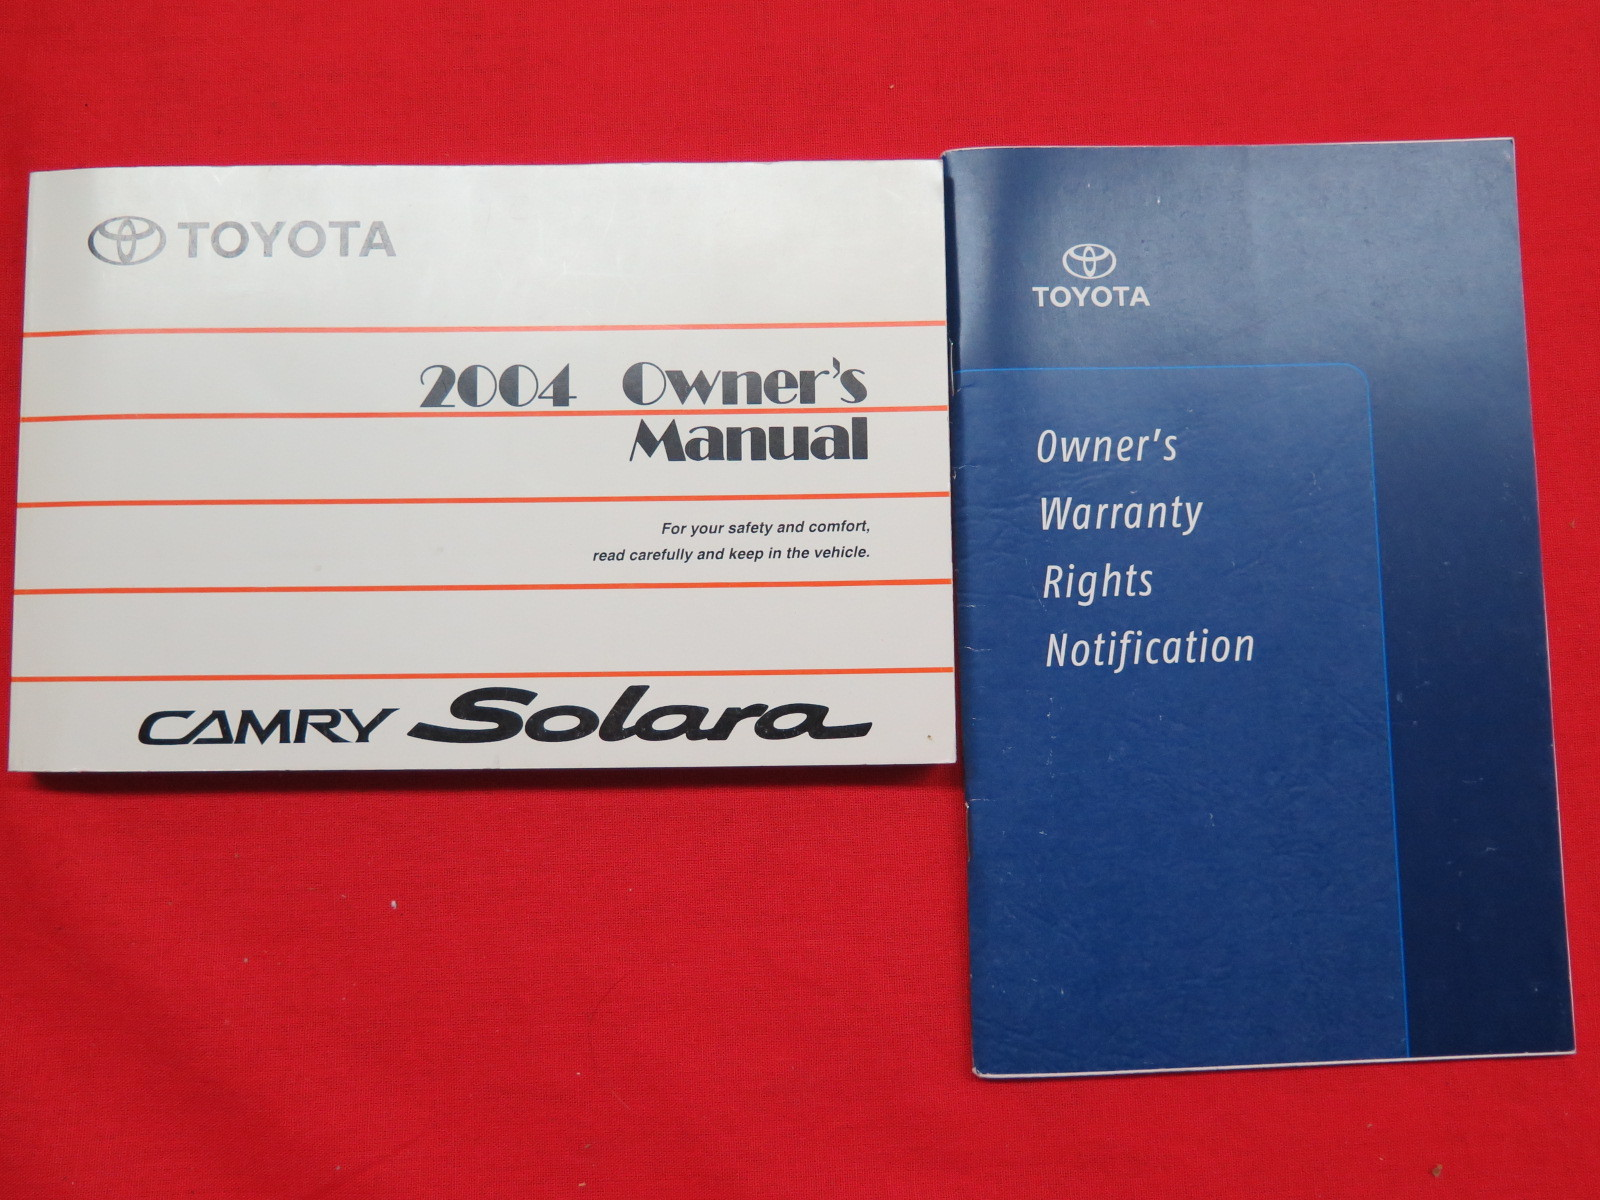 2004 toyota camry solara owners manual guide book. Black Bedroom Furniture Sets. Home Design Ideas